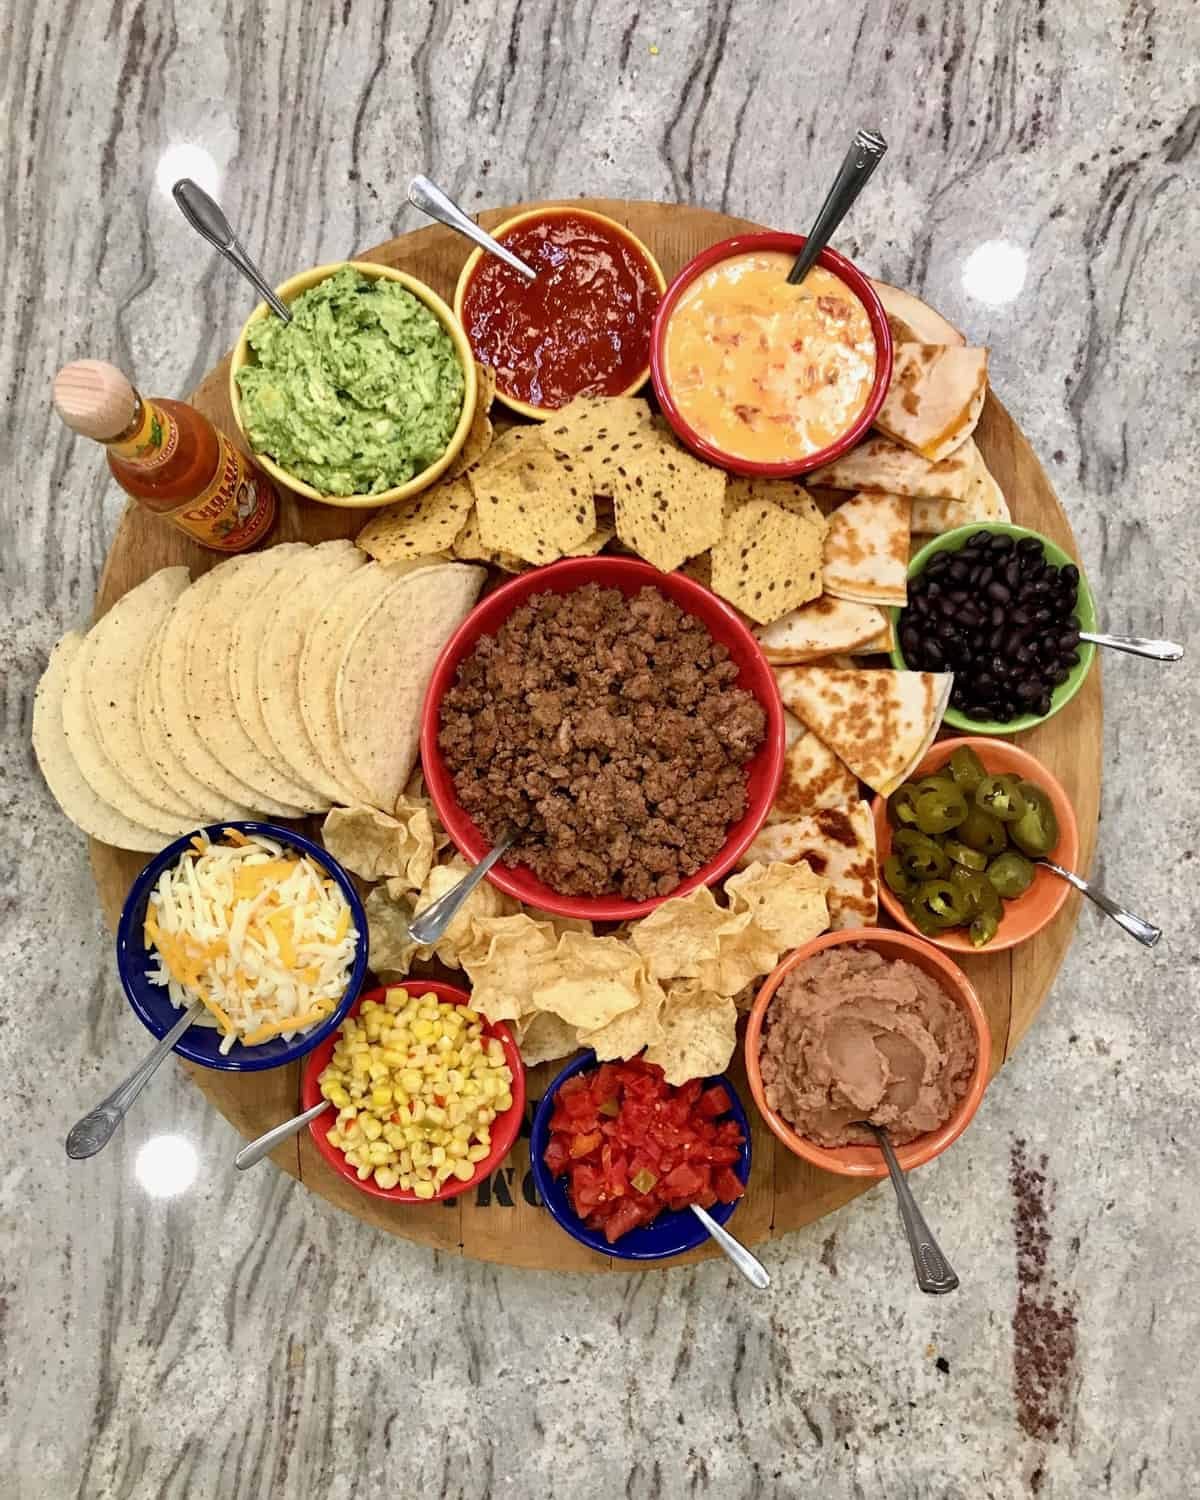 Build-Your-Own Beef Taco Board by The BakerMama